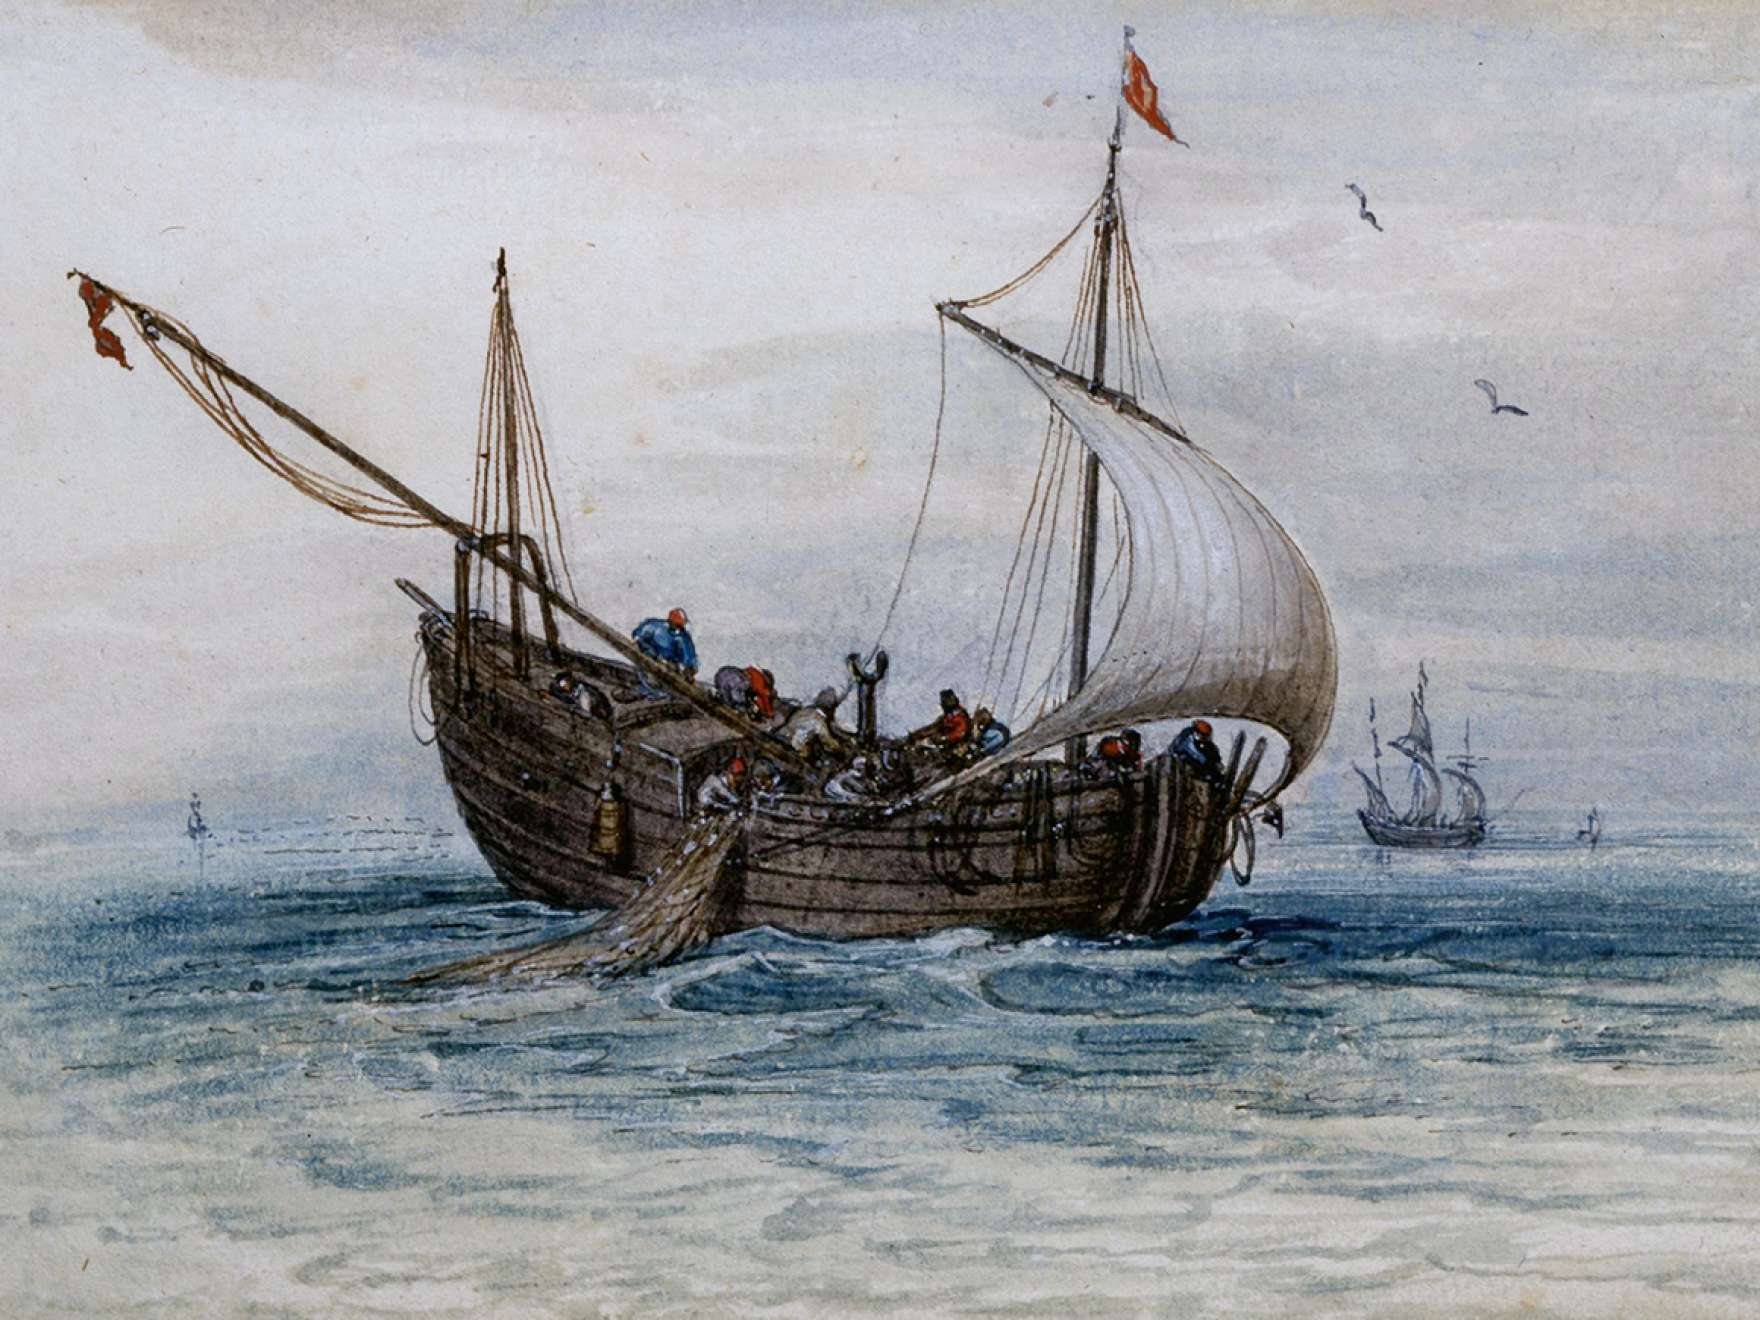 Adriaen Van De Venne, (Watercolor) A Herring Buss, 1625